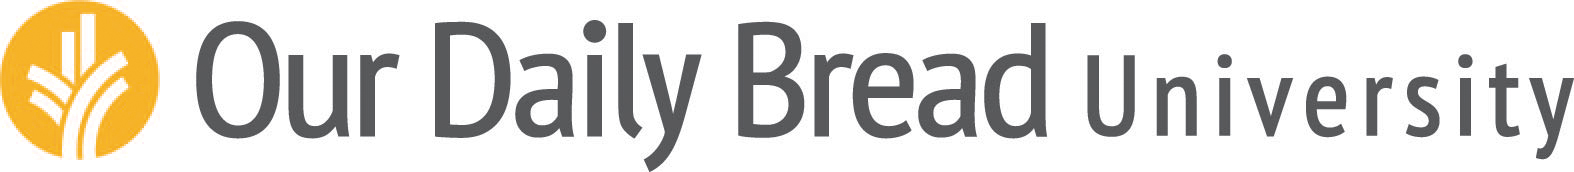 Our Daily Bread University